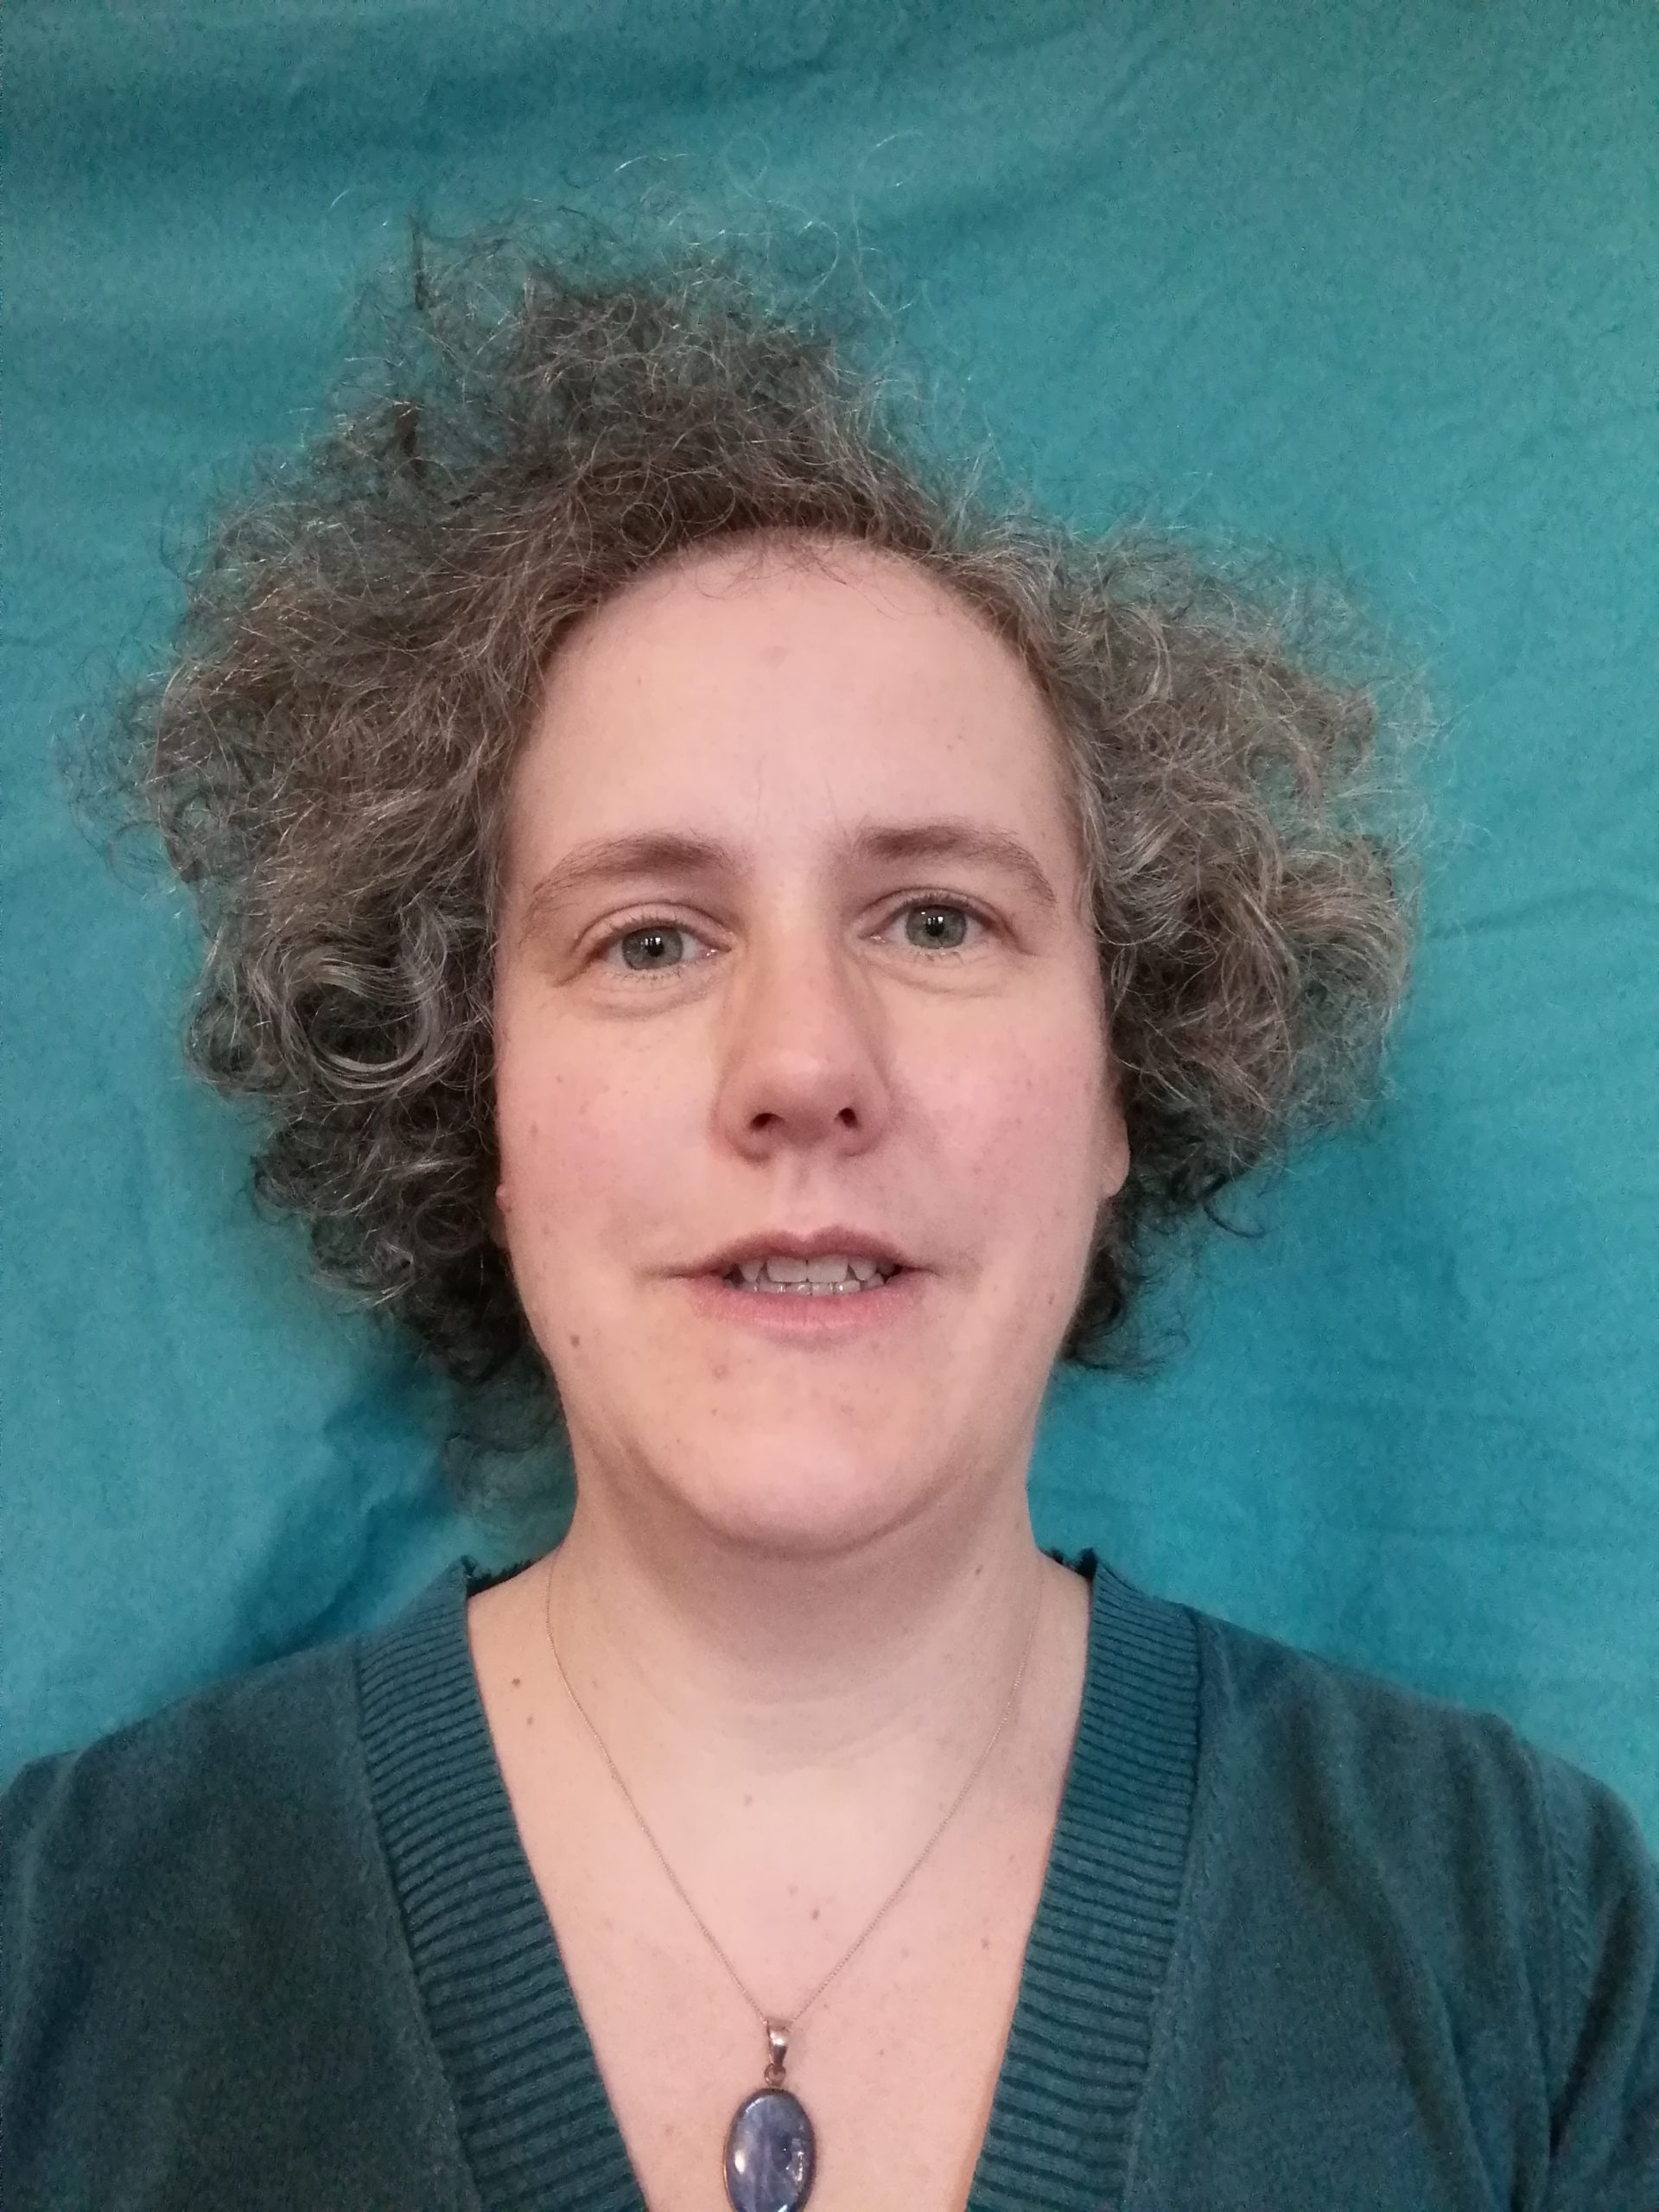 I am Hanna Bohrisch, a person-centred counsellor, which in my believe is a very hopeful way of being. Before I decided to become a therapist, I was a volunteer with the Samaritans. I studied at the Metanoia Institute London. I am a registered member of the British Association for Counselling and Psychotherapy (BACP). My experience is with people who are abuse and domestic violence survivors. You have the potential for self-development, acceptance and self-confidence. Counselling provides a safe, warm, understanding and genuine space for you. Therapy is a relationship and a privilege. We collaborate in creating a counselling relationship that is built on trust, integrity and honesty. I want to share something about me, so that you can get an image of who I am. That facilitates your decision if you would like me to be your counsellor, if you believe that I am trustworthy and genuine.